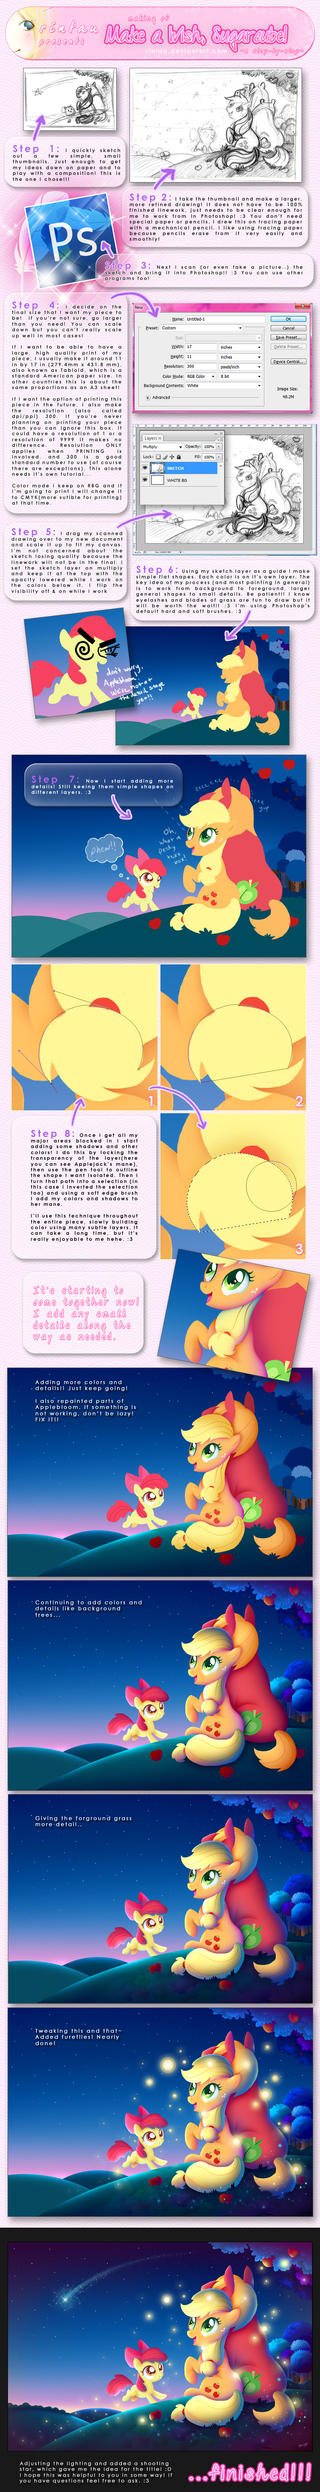 Making of : Make a Wish, Sugarcube! by RinTau